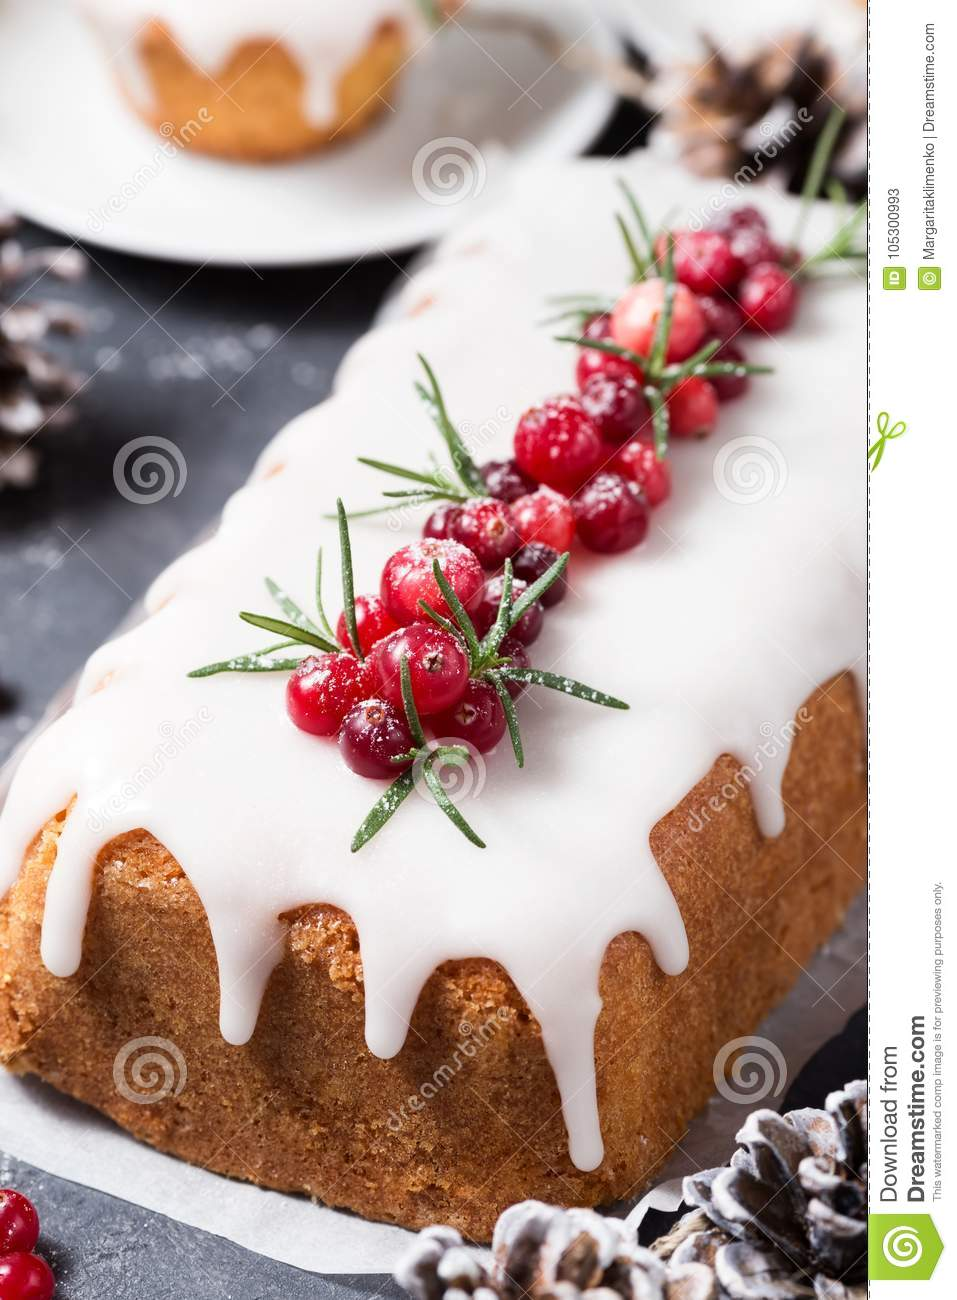 Cranberry Christmas Cake.Christmas Cake With Sugar Icing Cranberries And Rosemary